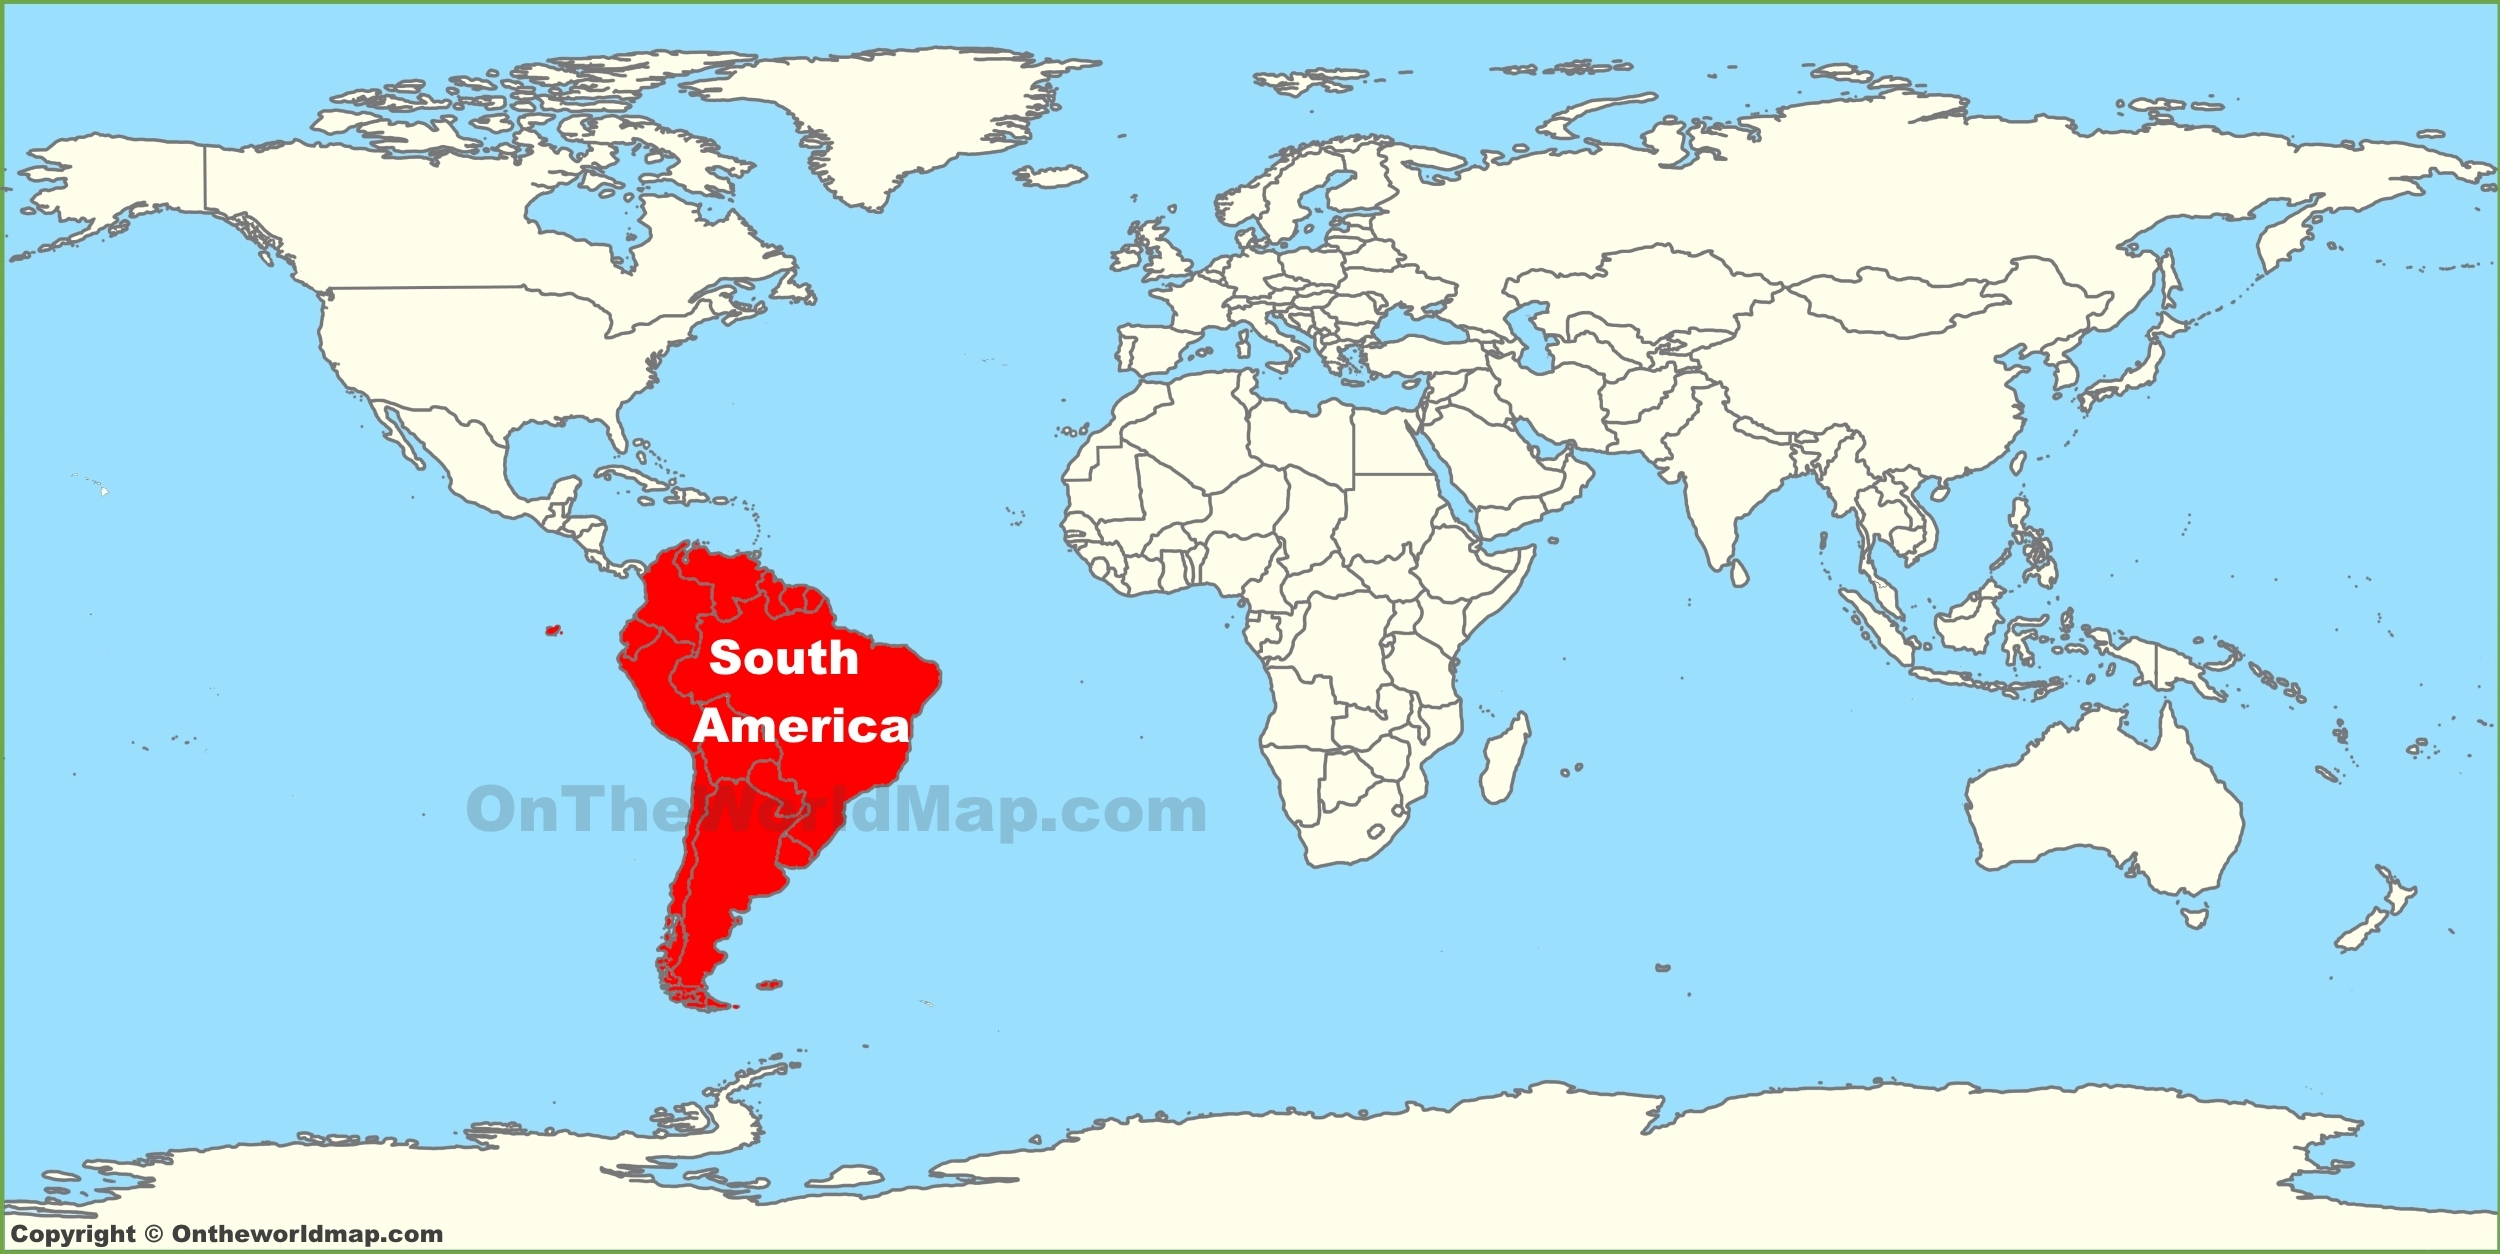 South America Location On The World Map - S america map